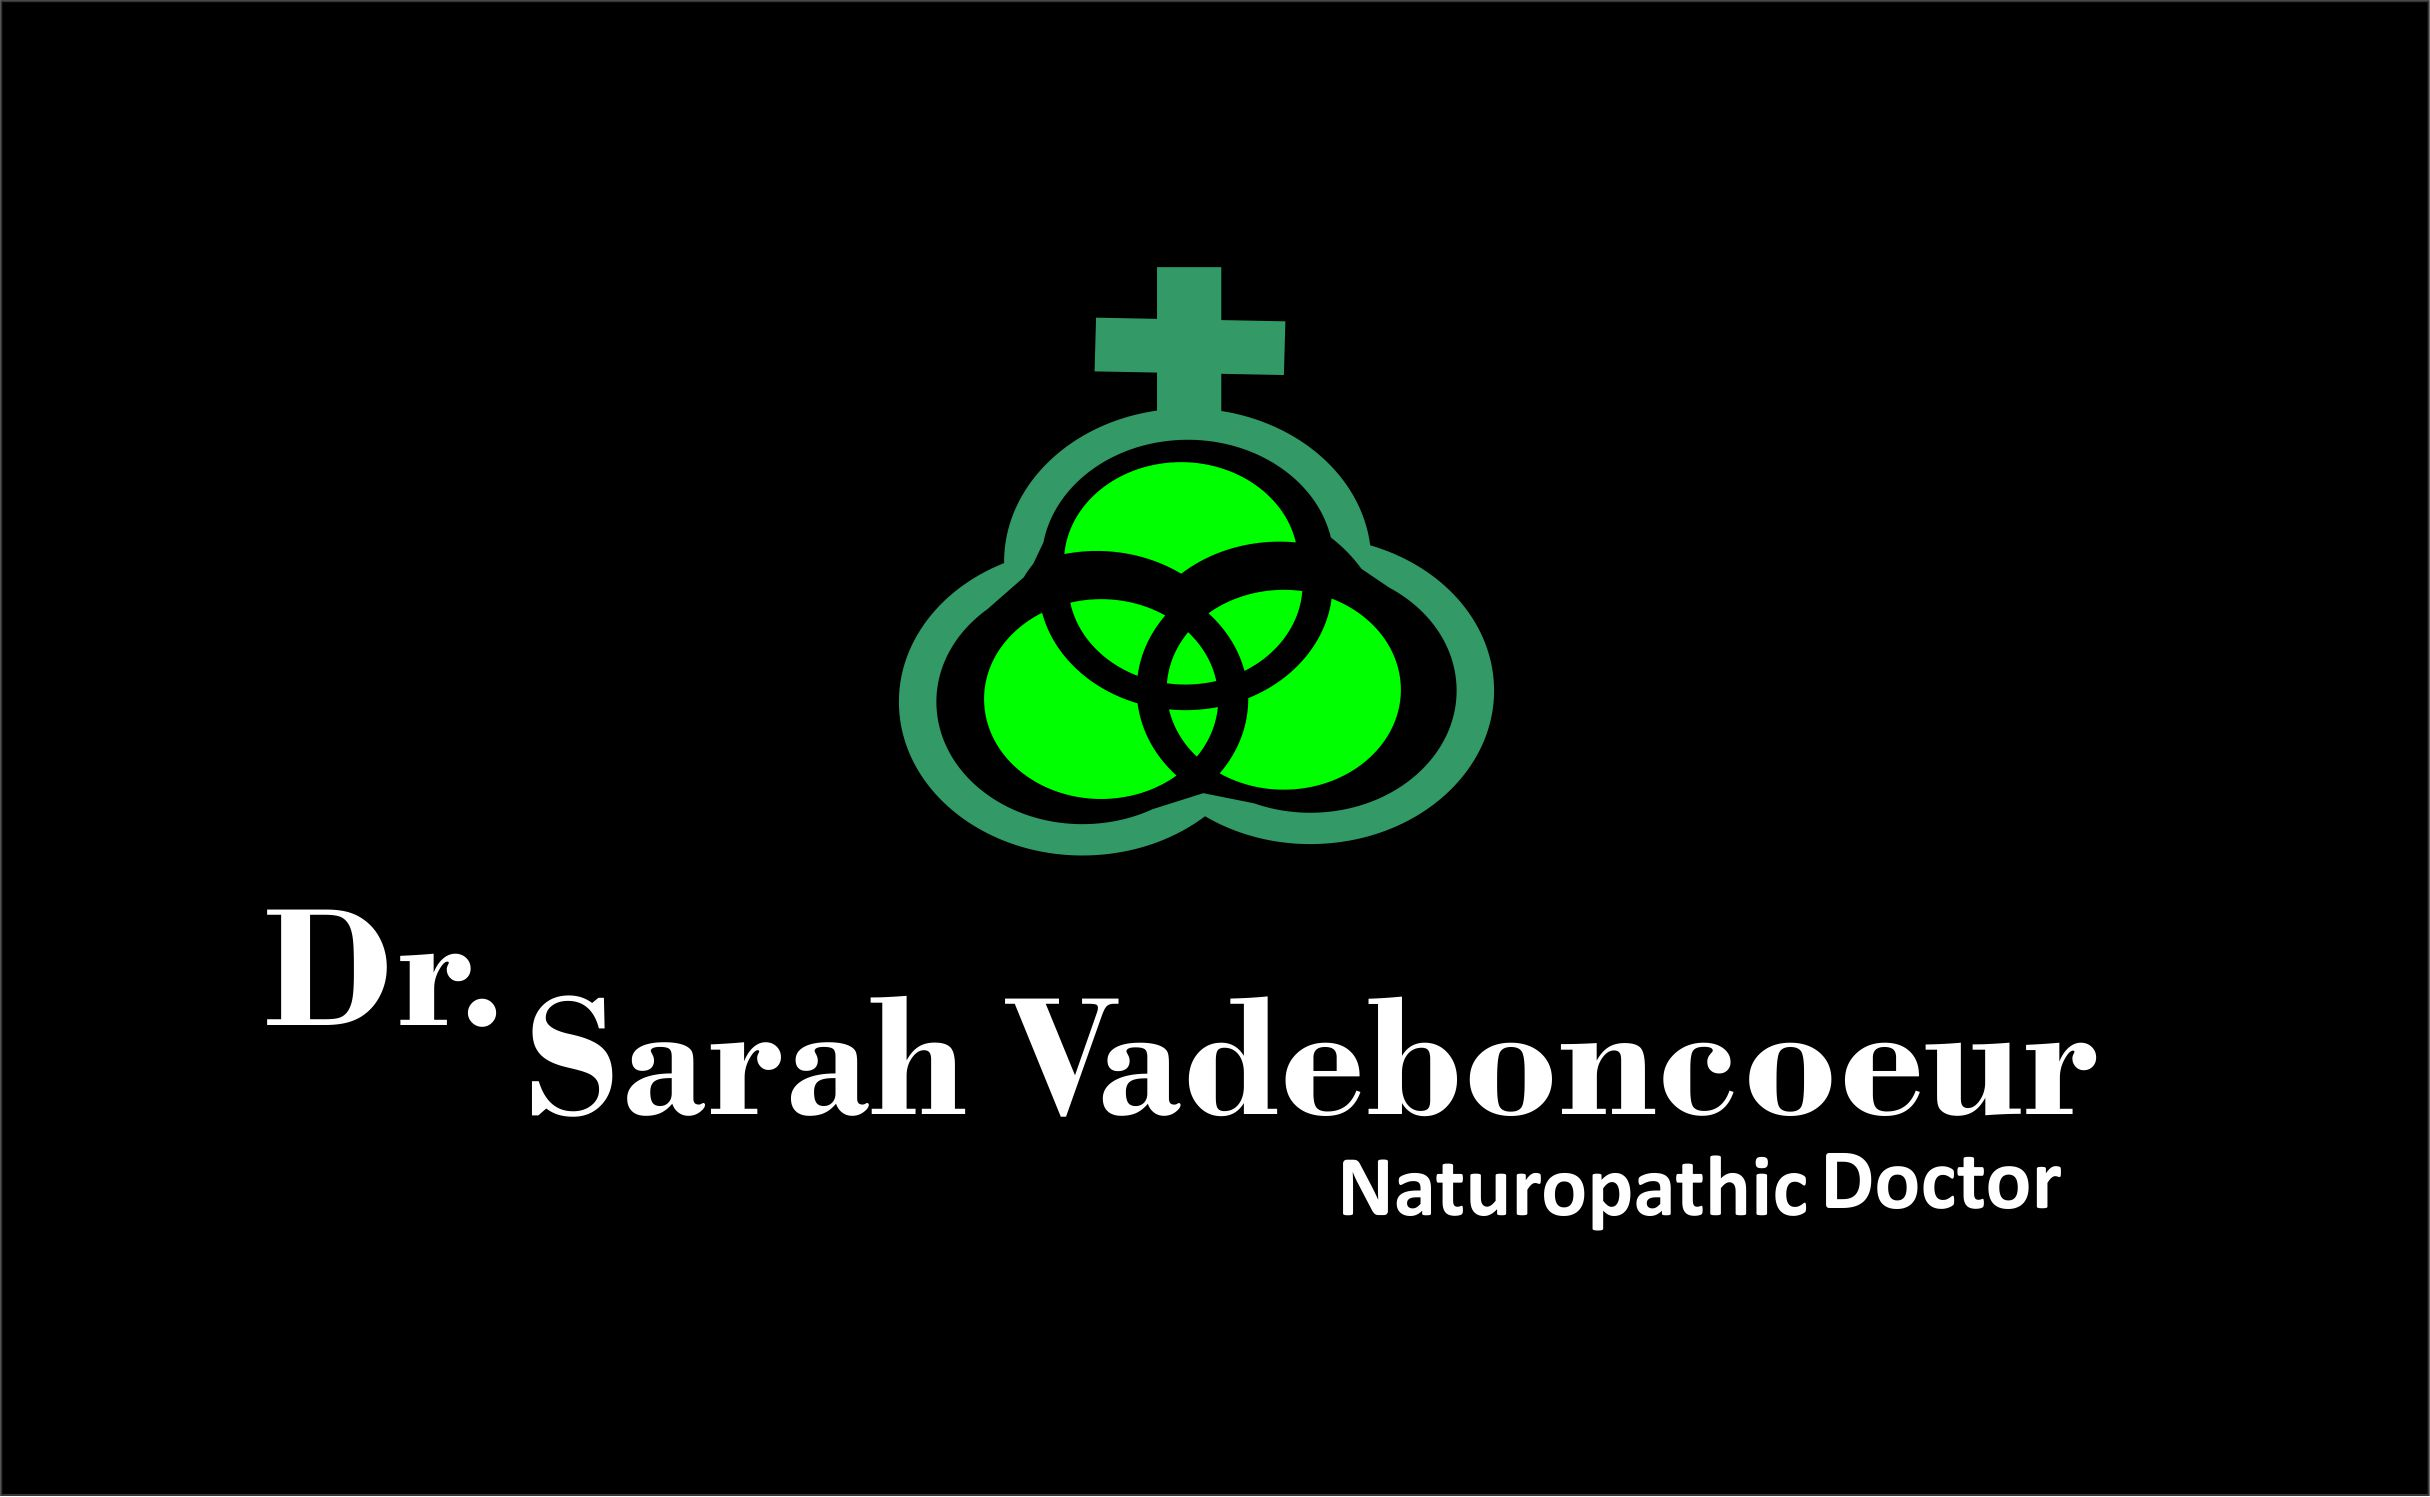 Logo Design by Cu Jcd - Entry No. 89 in the Logo Design Contest New Logo Design for Dr. Sarah Vadeboncoeur, Naturopathic Doctor.